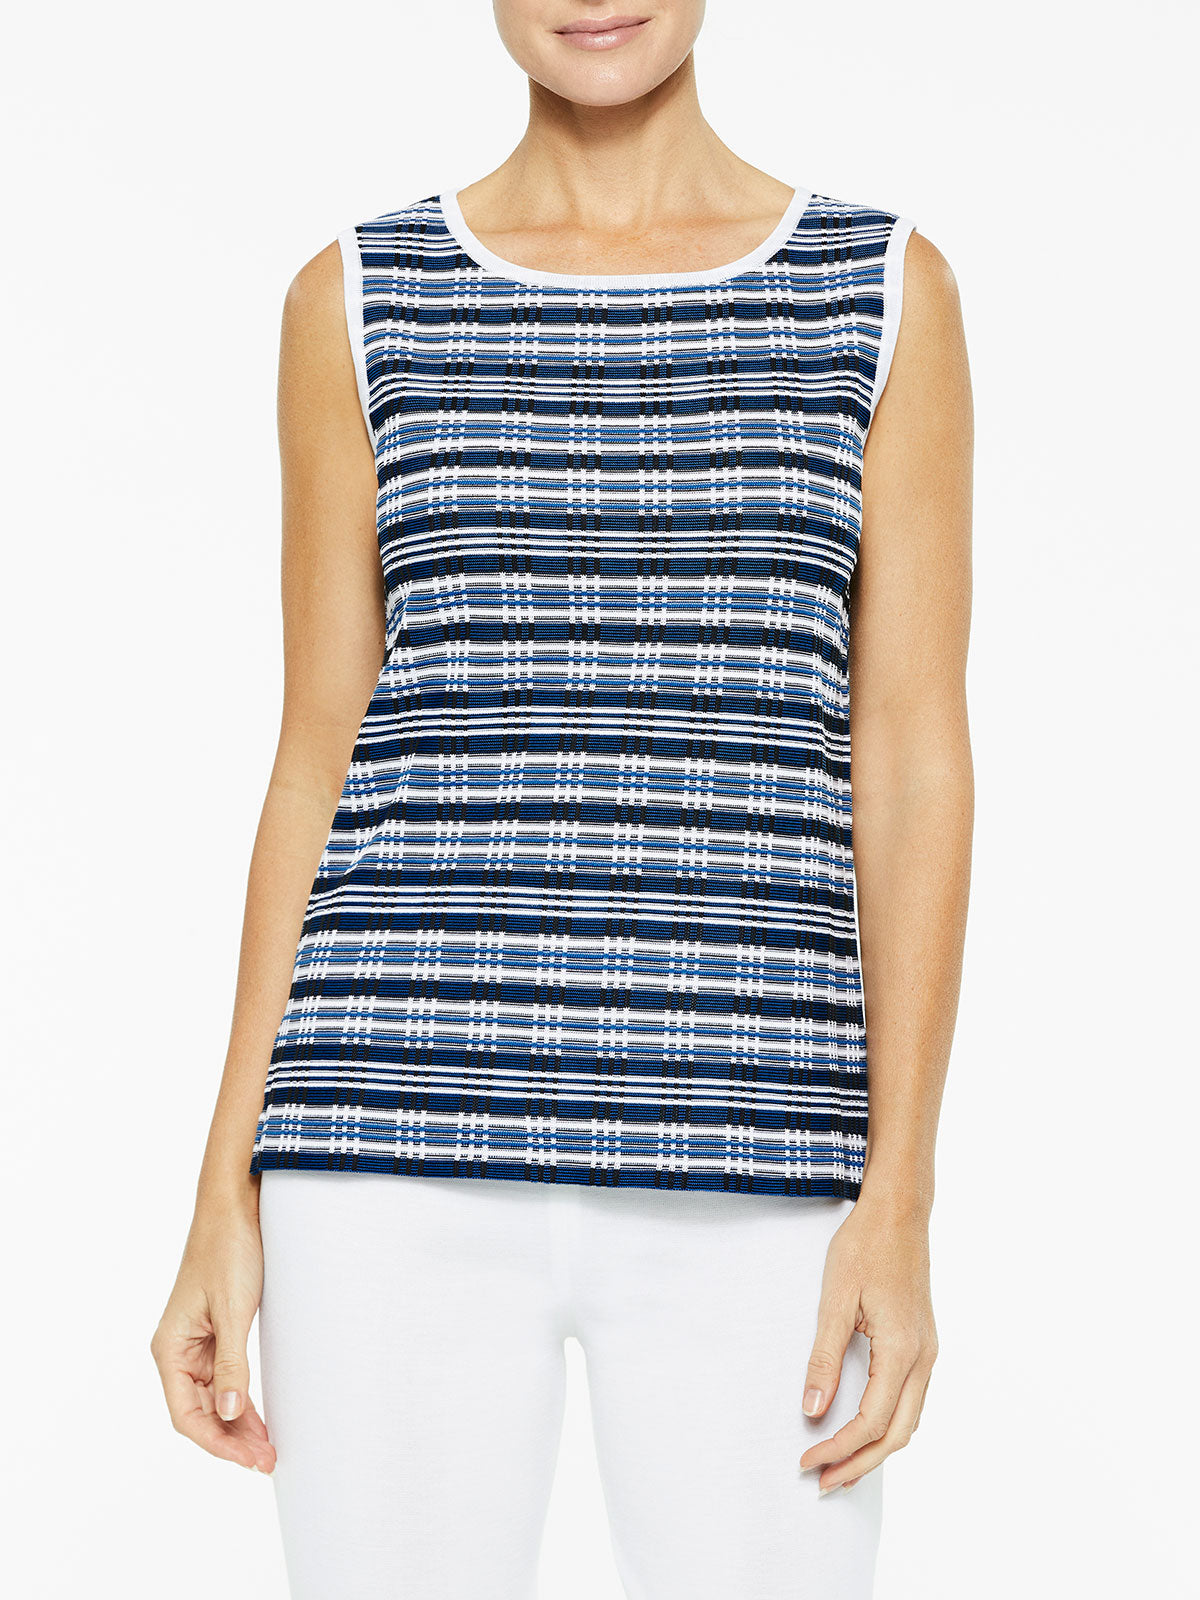 Digital Pattern Classic Knit Tank Top Color Black/Harbor Blue/White